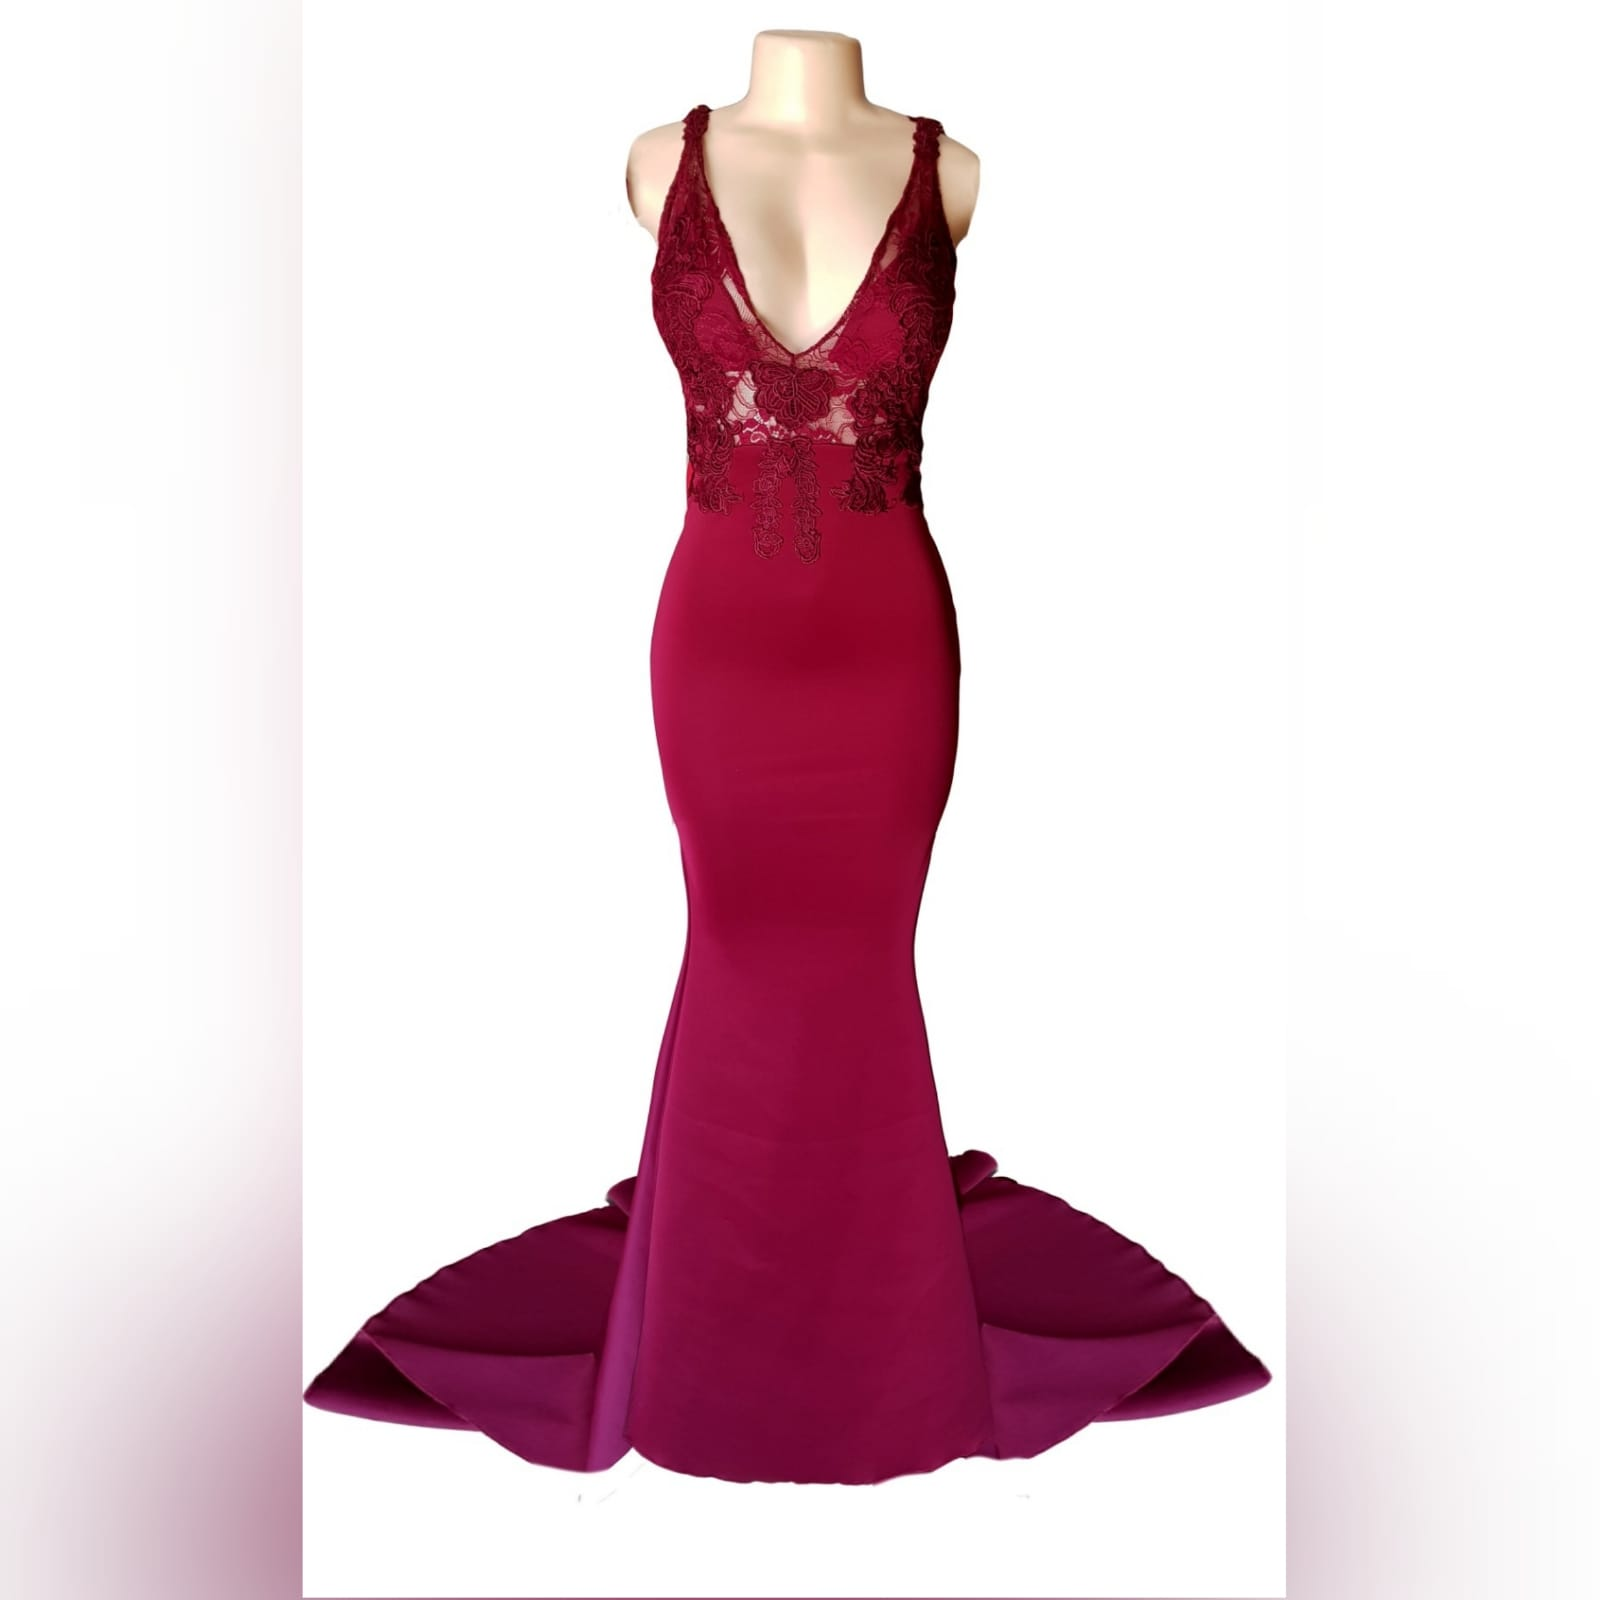 Burgundy soft mermaid sexy elegant prom dress 5 burgundy soft mermaid sexy elegant prom dress. With an illusion lace bodice with deep v neckline, low open v back with strap detail, with a train